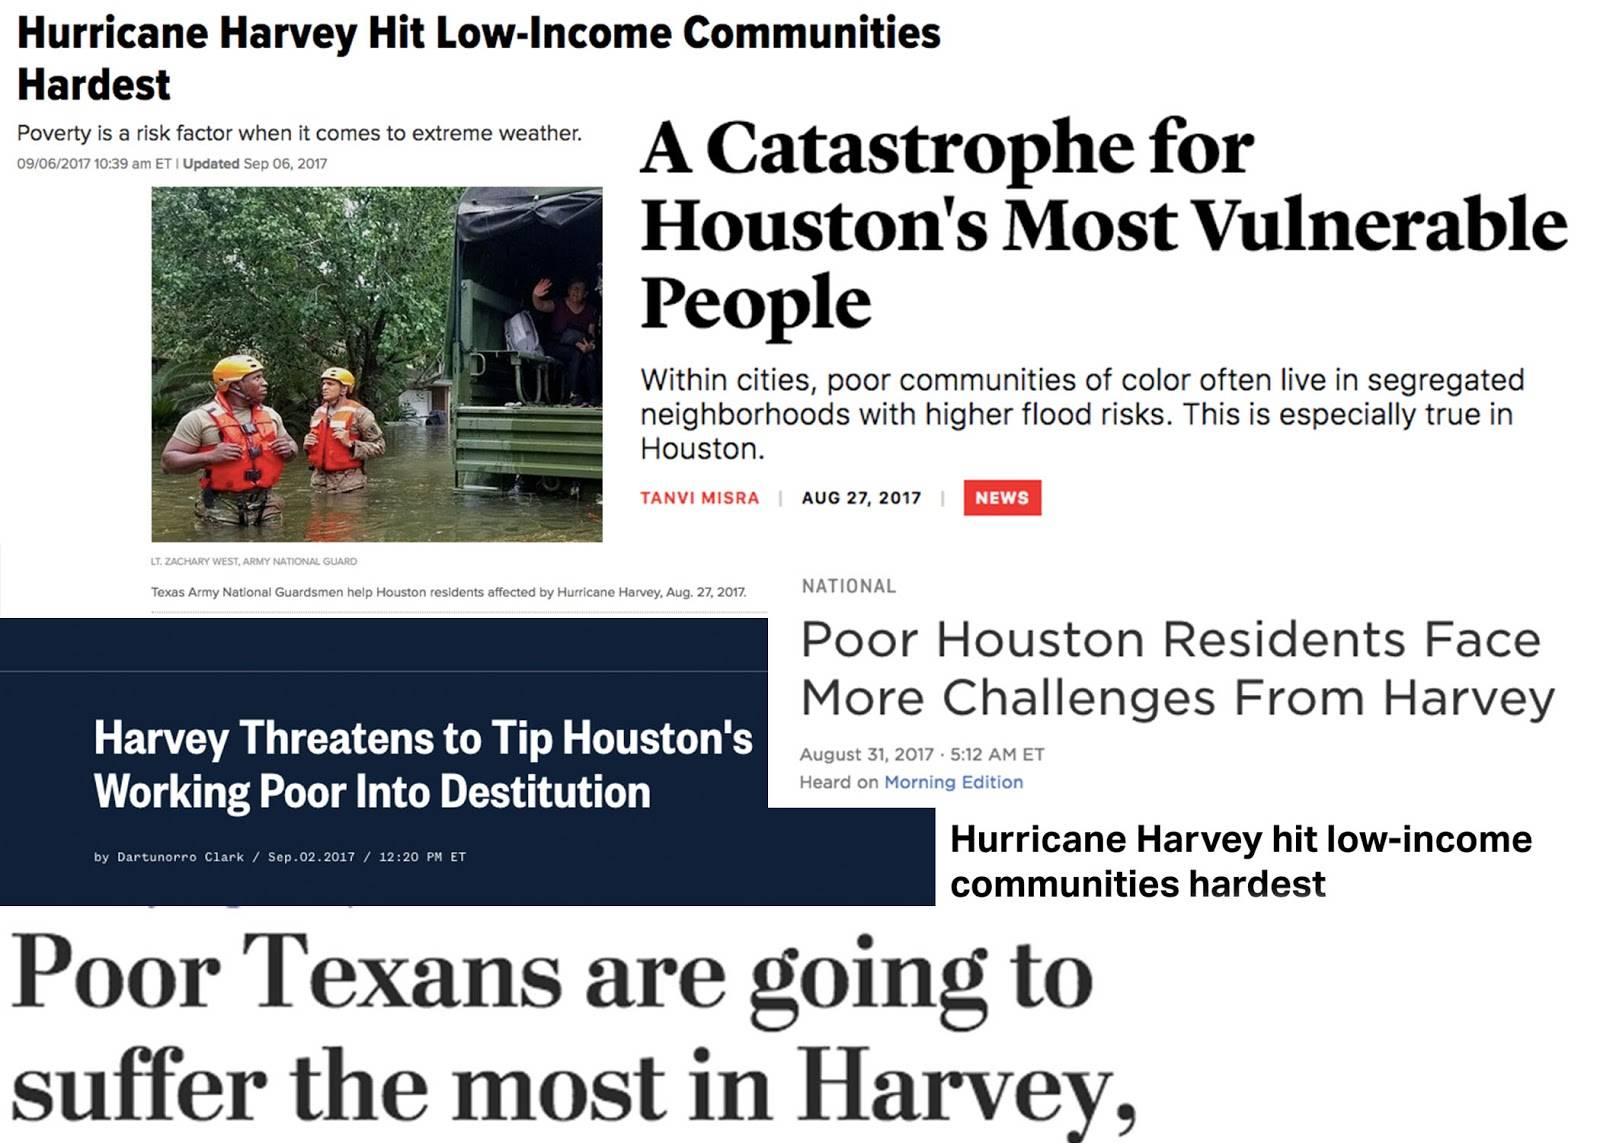 "Media headlines following Hurricane Harvey showcase its impact on Houston's most vulnerable communities: ""Hurricane Harvey Hit Low-Income Communities Hardest,"" ""A Catastrophe for Houston's Most Vulnerable People,"" ""Harvey Threatens to Tip Houston's Working Poor Into Destitution,"" ""Poor Houston Residents Face More Challenges from Harvey."""